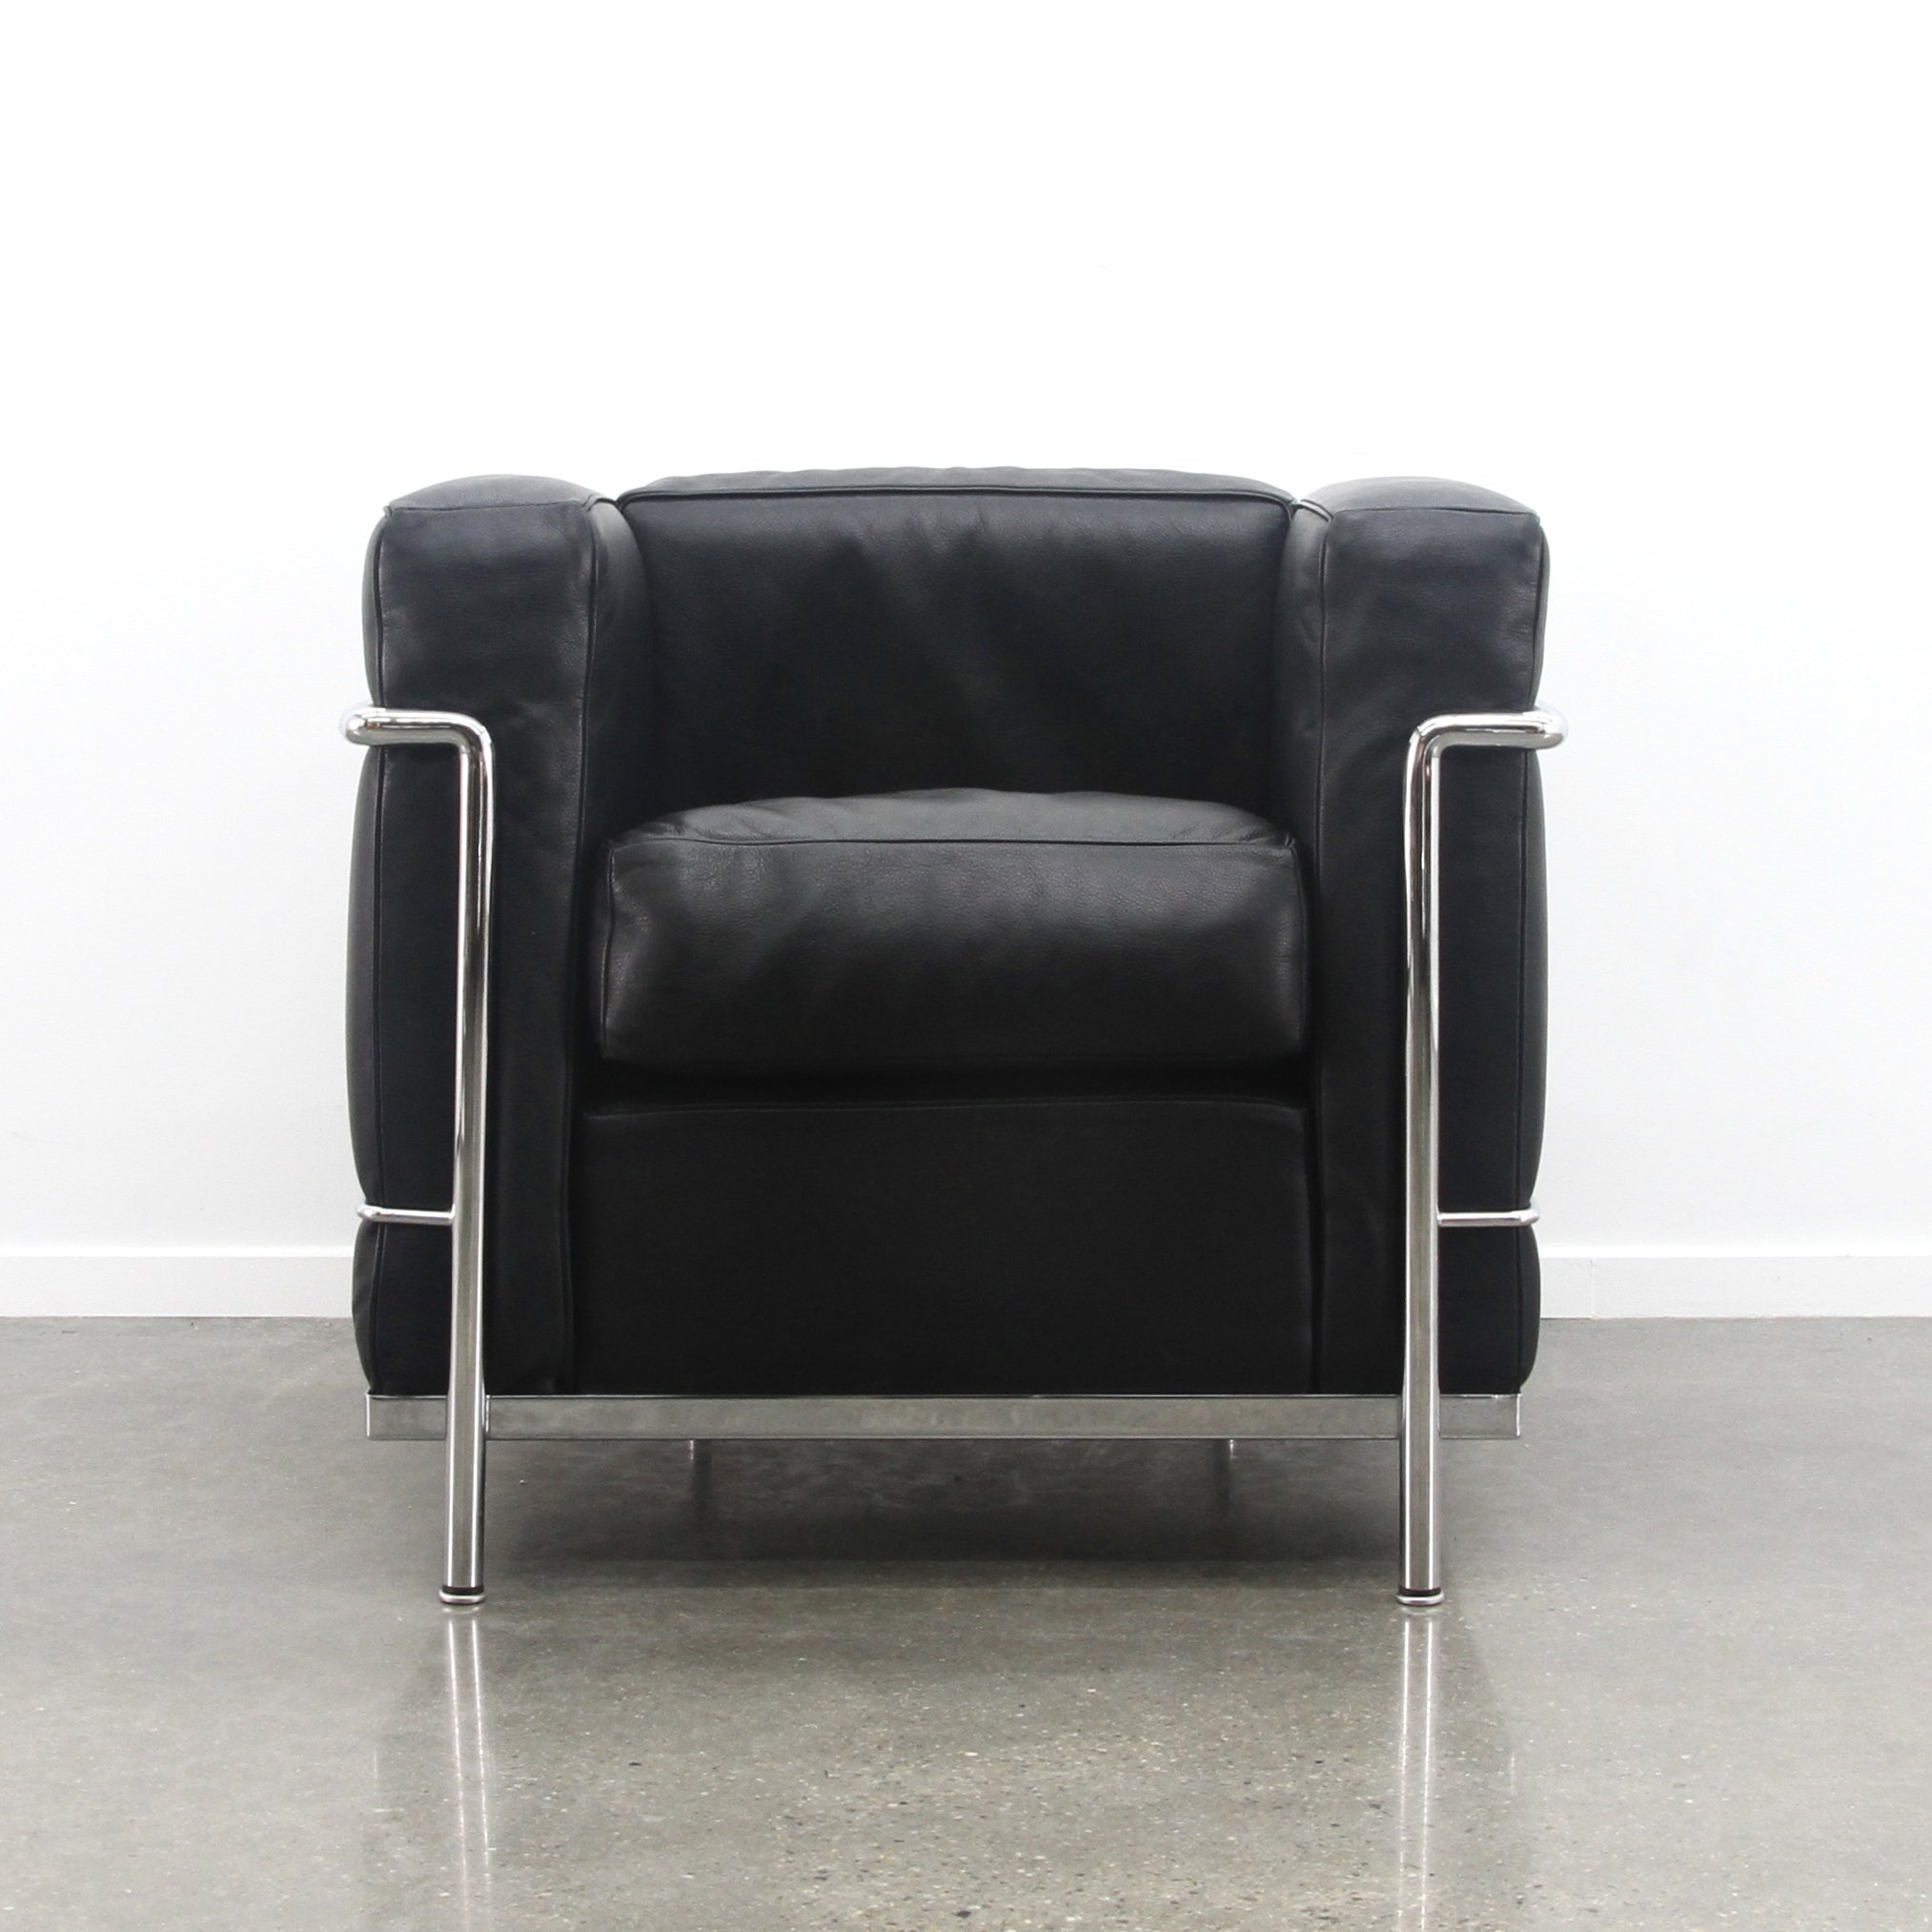 LC2 arm chair by Le Corbusier & Charlotte Perriand for Cassina ...